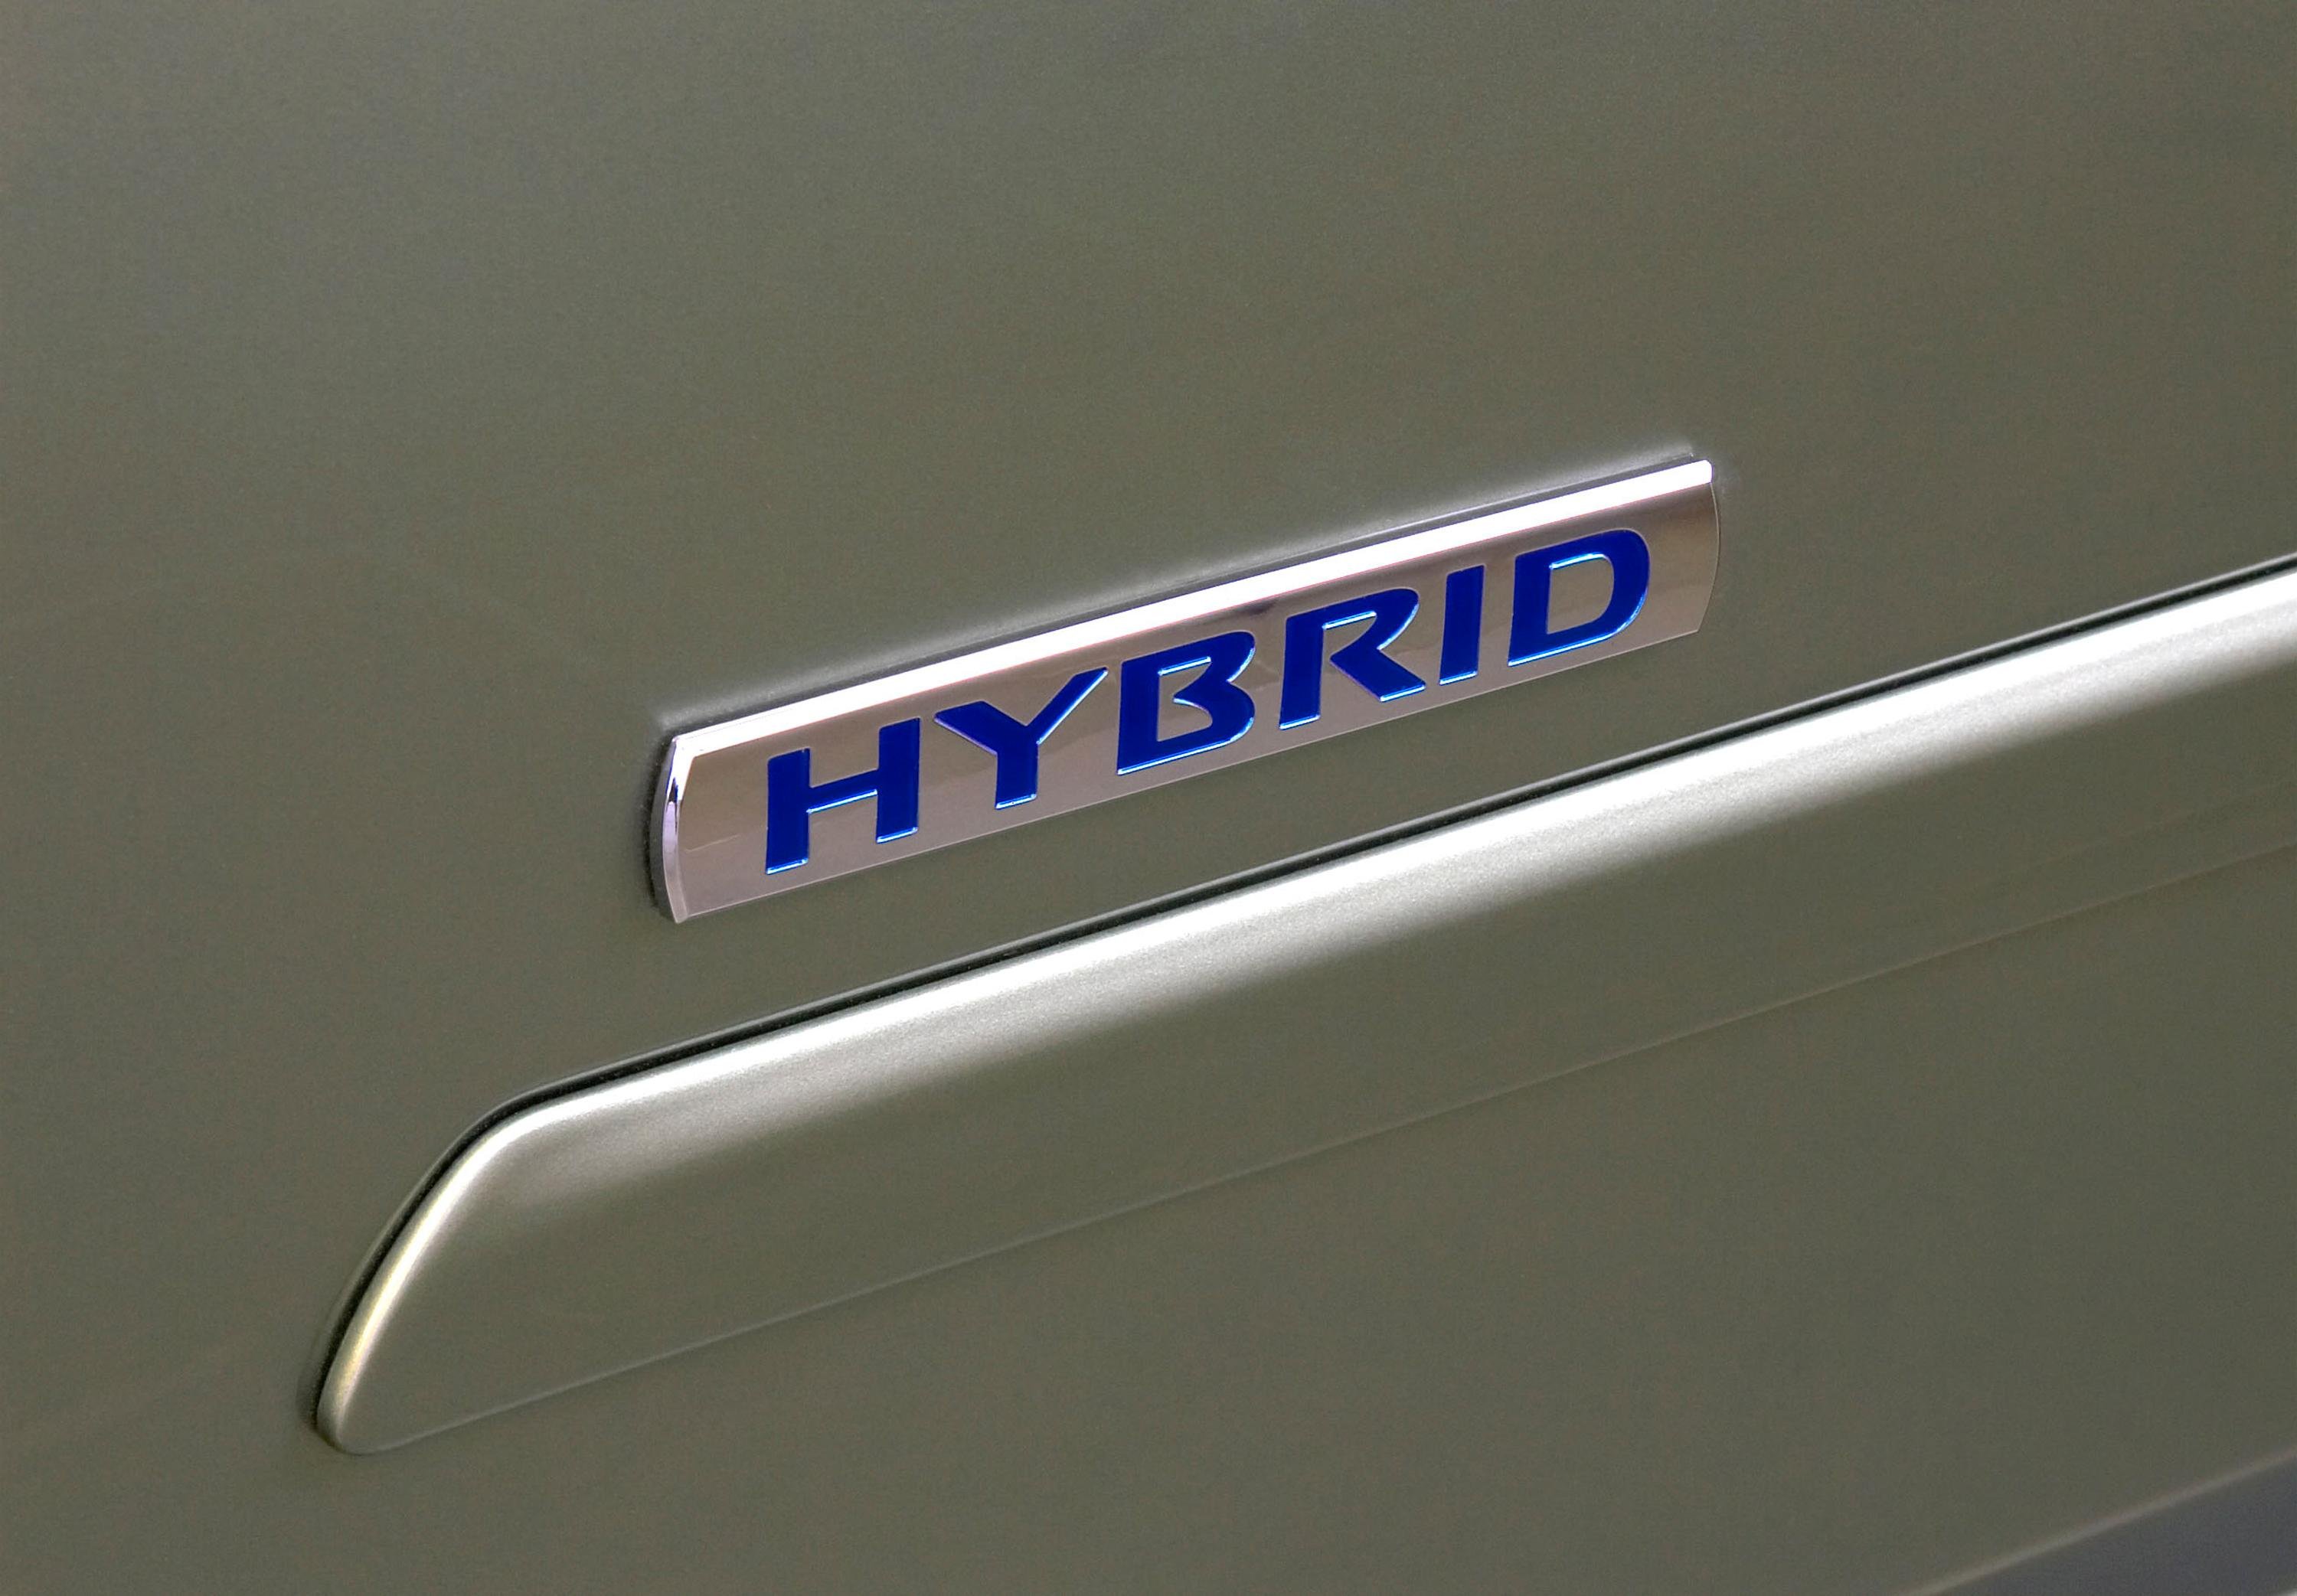 Nissan Altima Hybrid Named To Quot Top 10 Green Cars Quot By Kelley Blue Book S Kbb Com